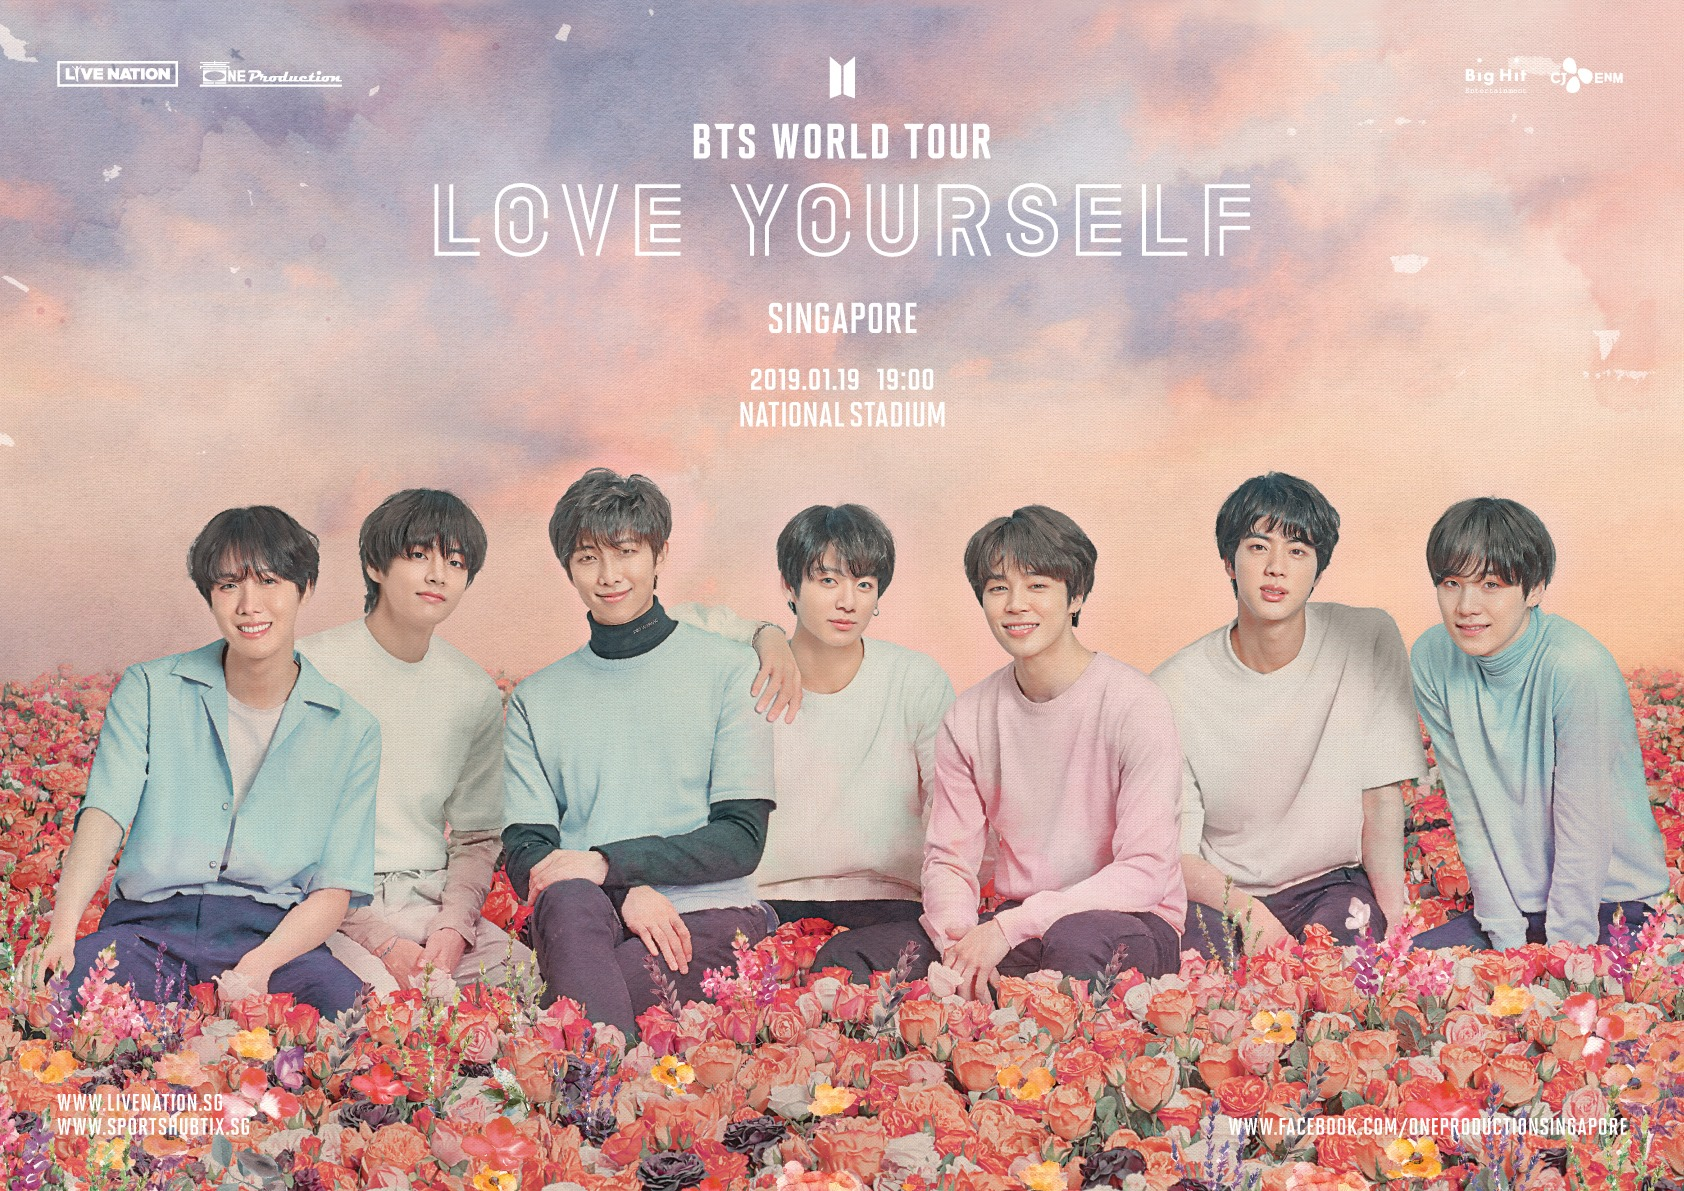 Bts To Stage Their Love Yourself World Tour At Singapore National